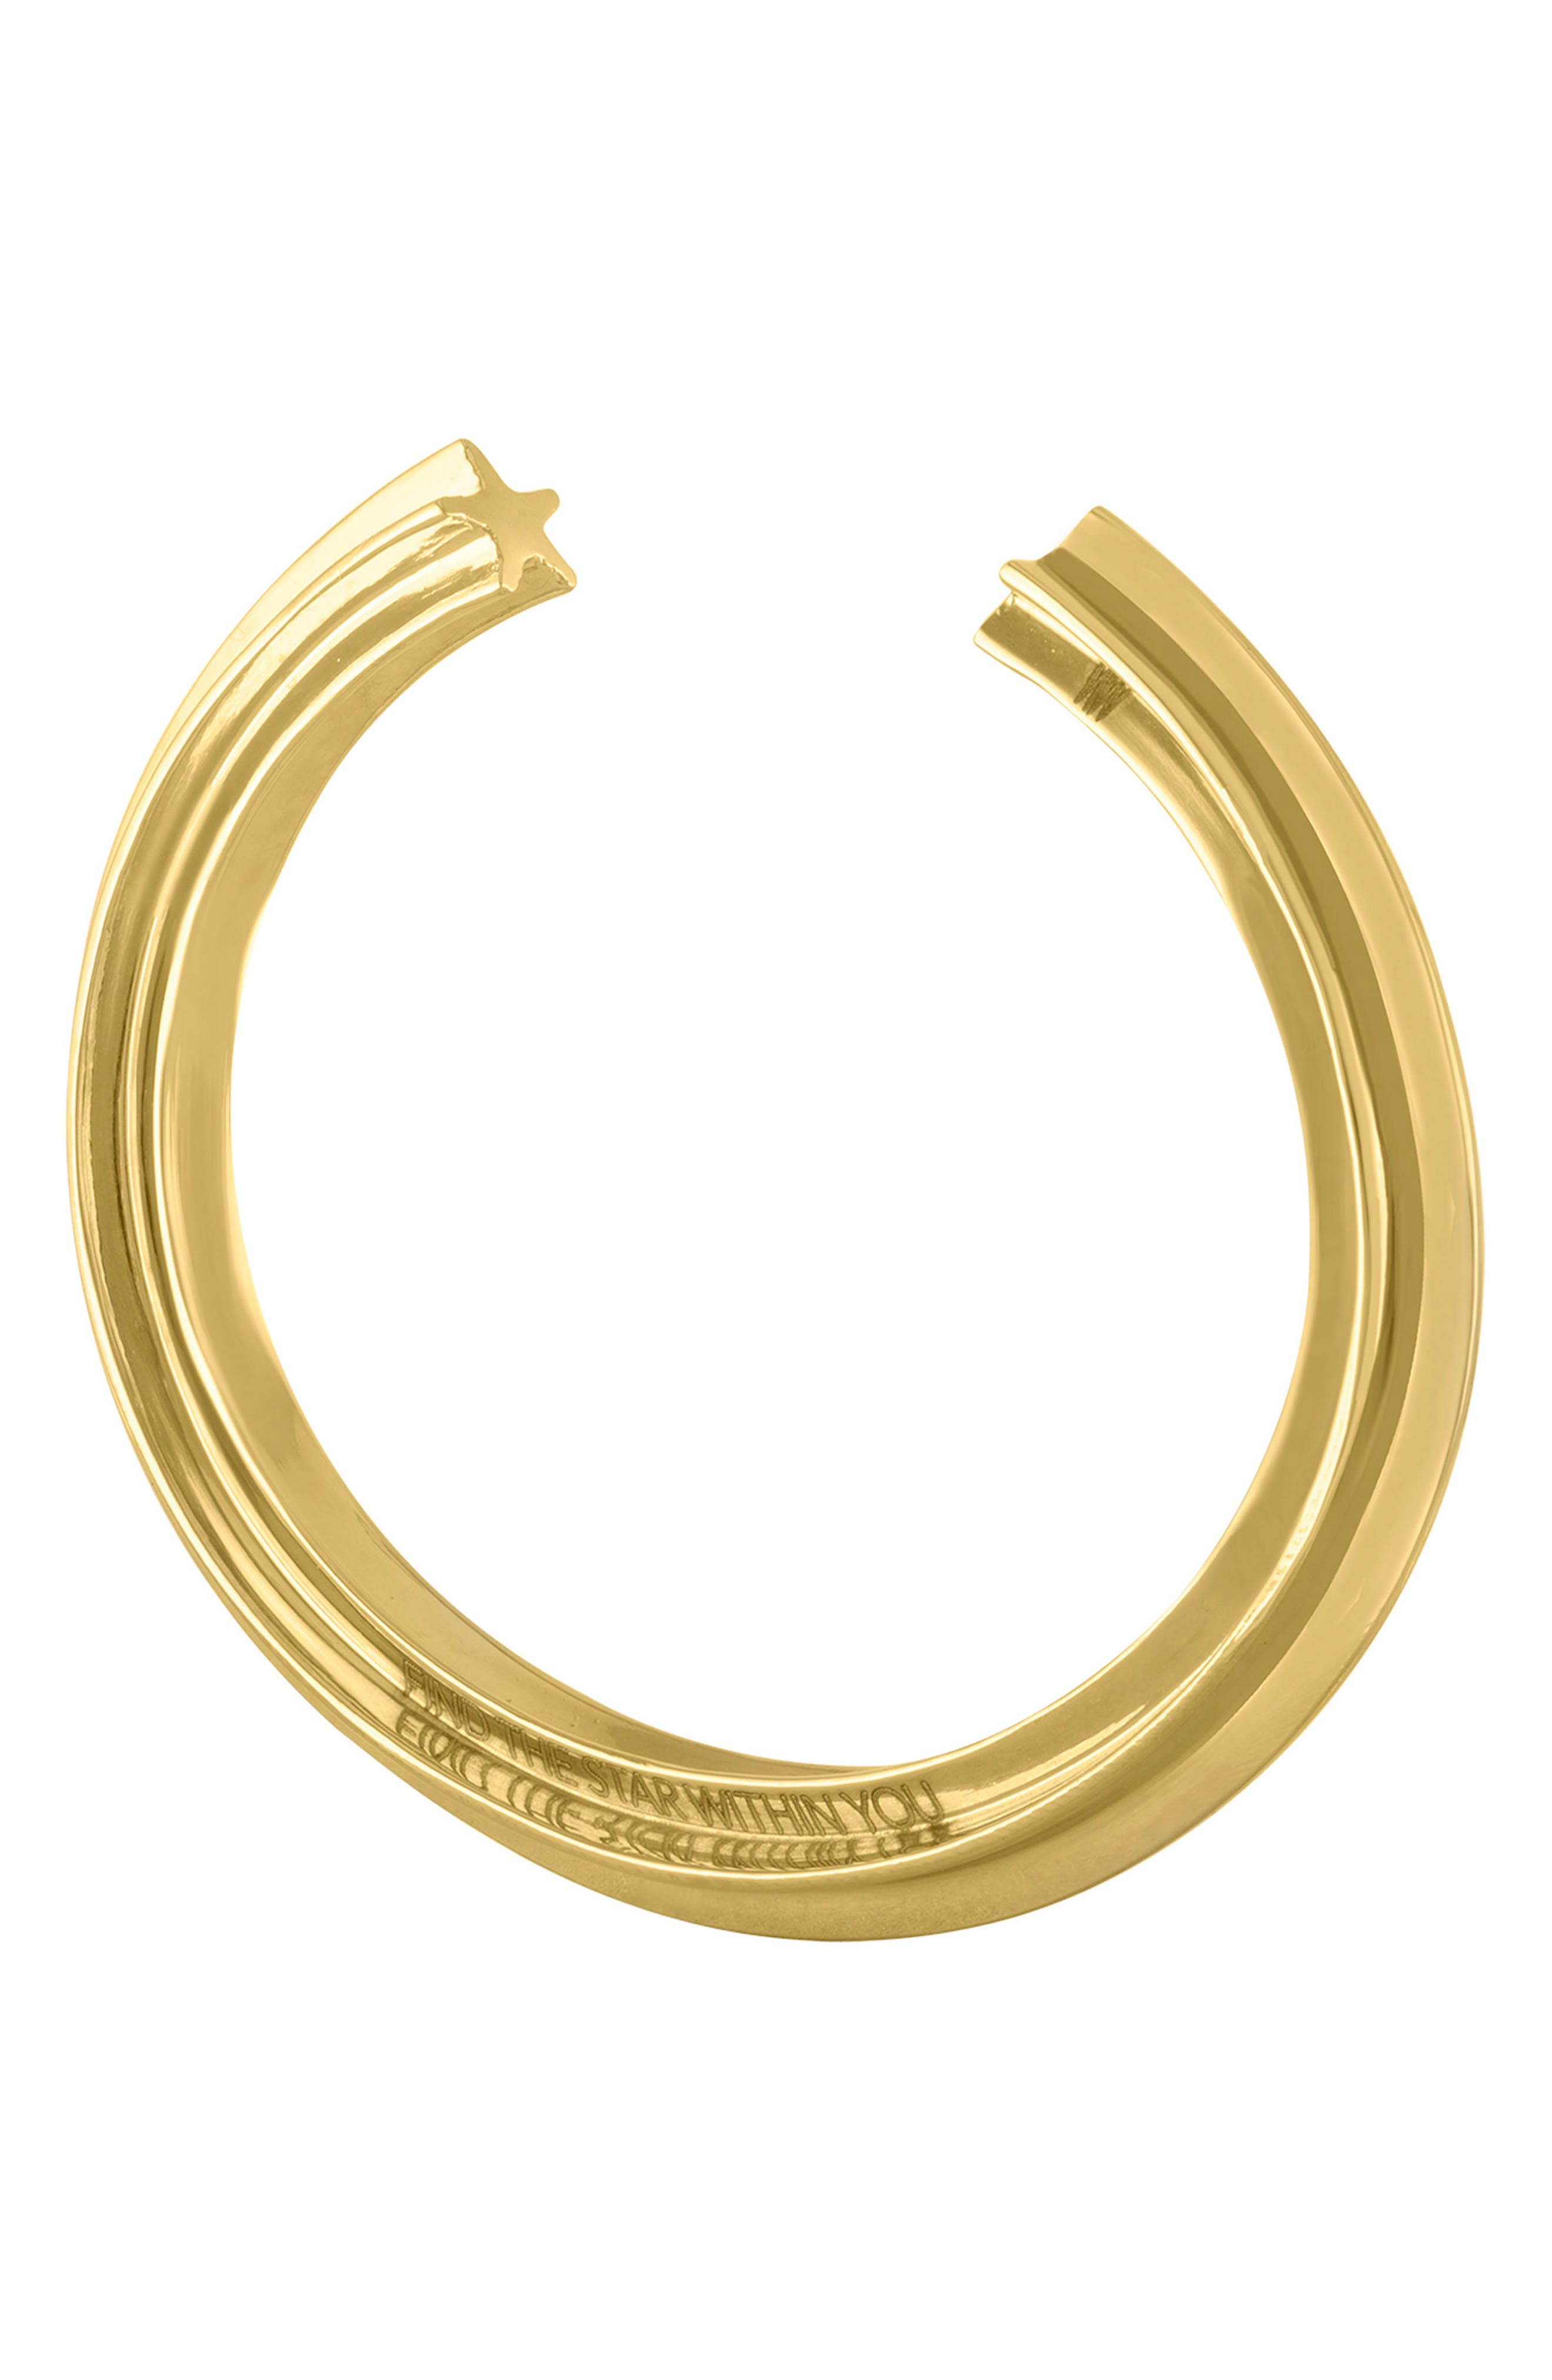 STELLA VALLE Find the Star Within You Cuff